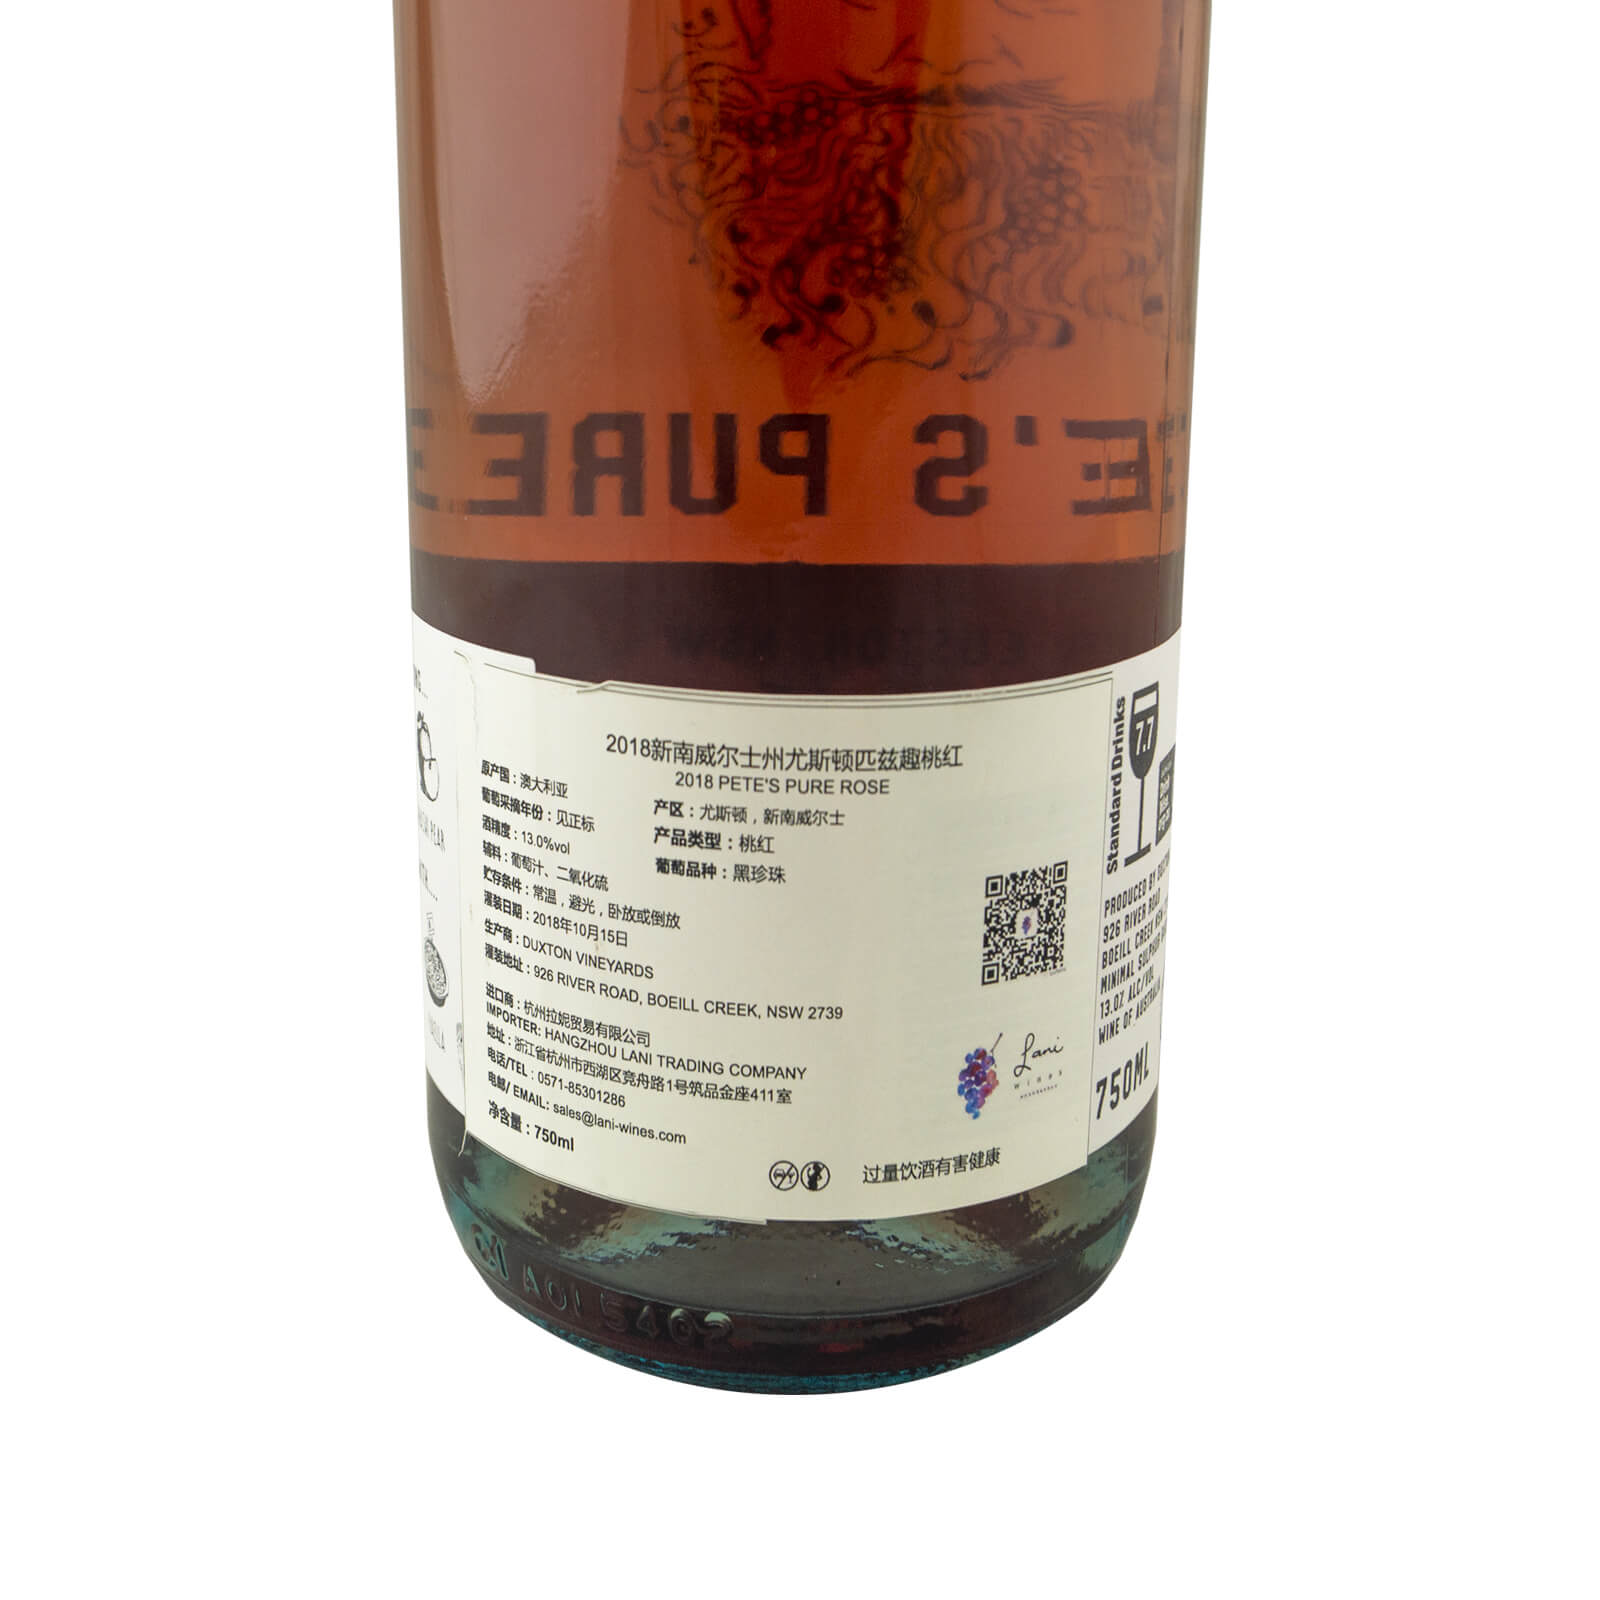 products-petes-pure-rose-c